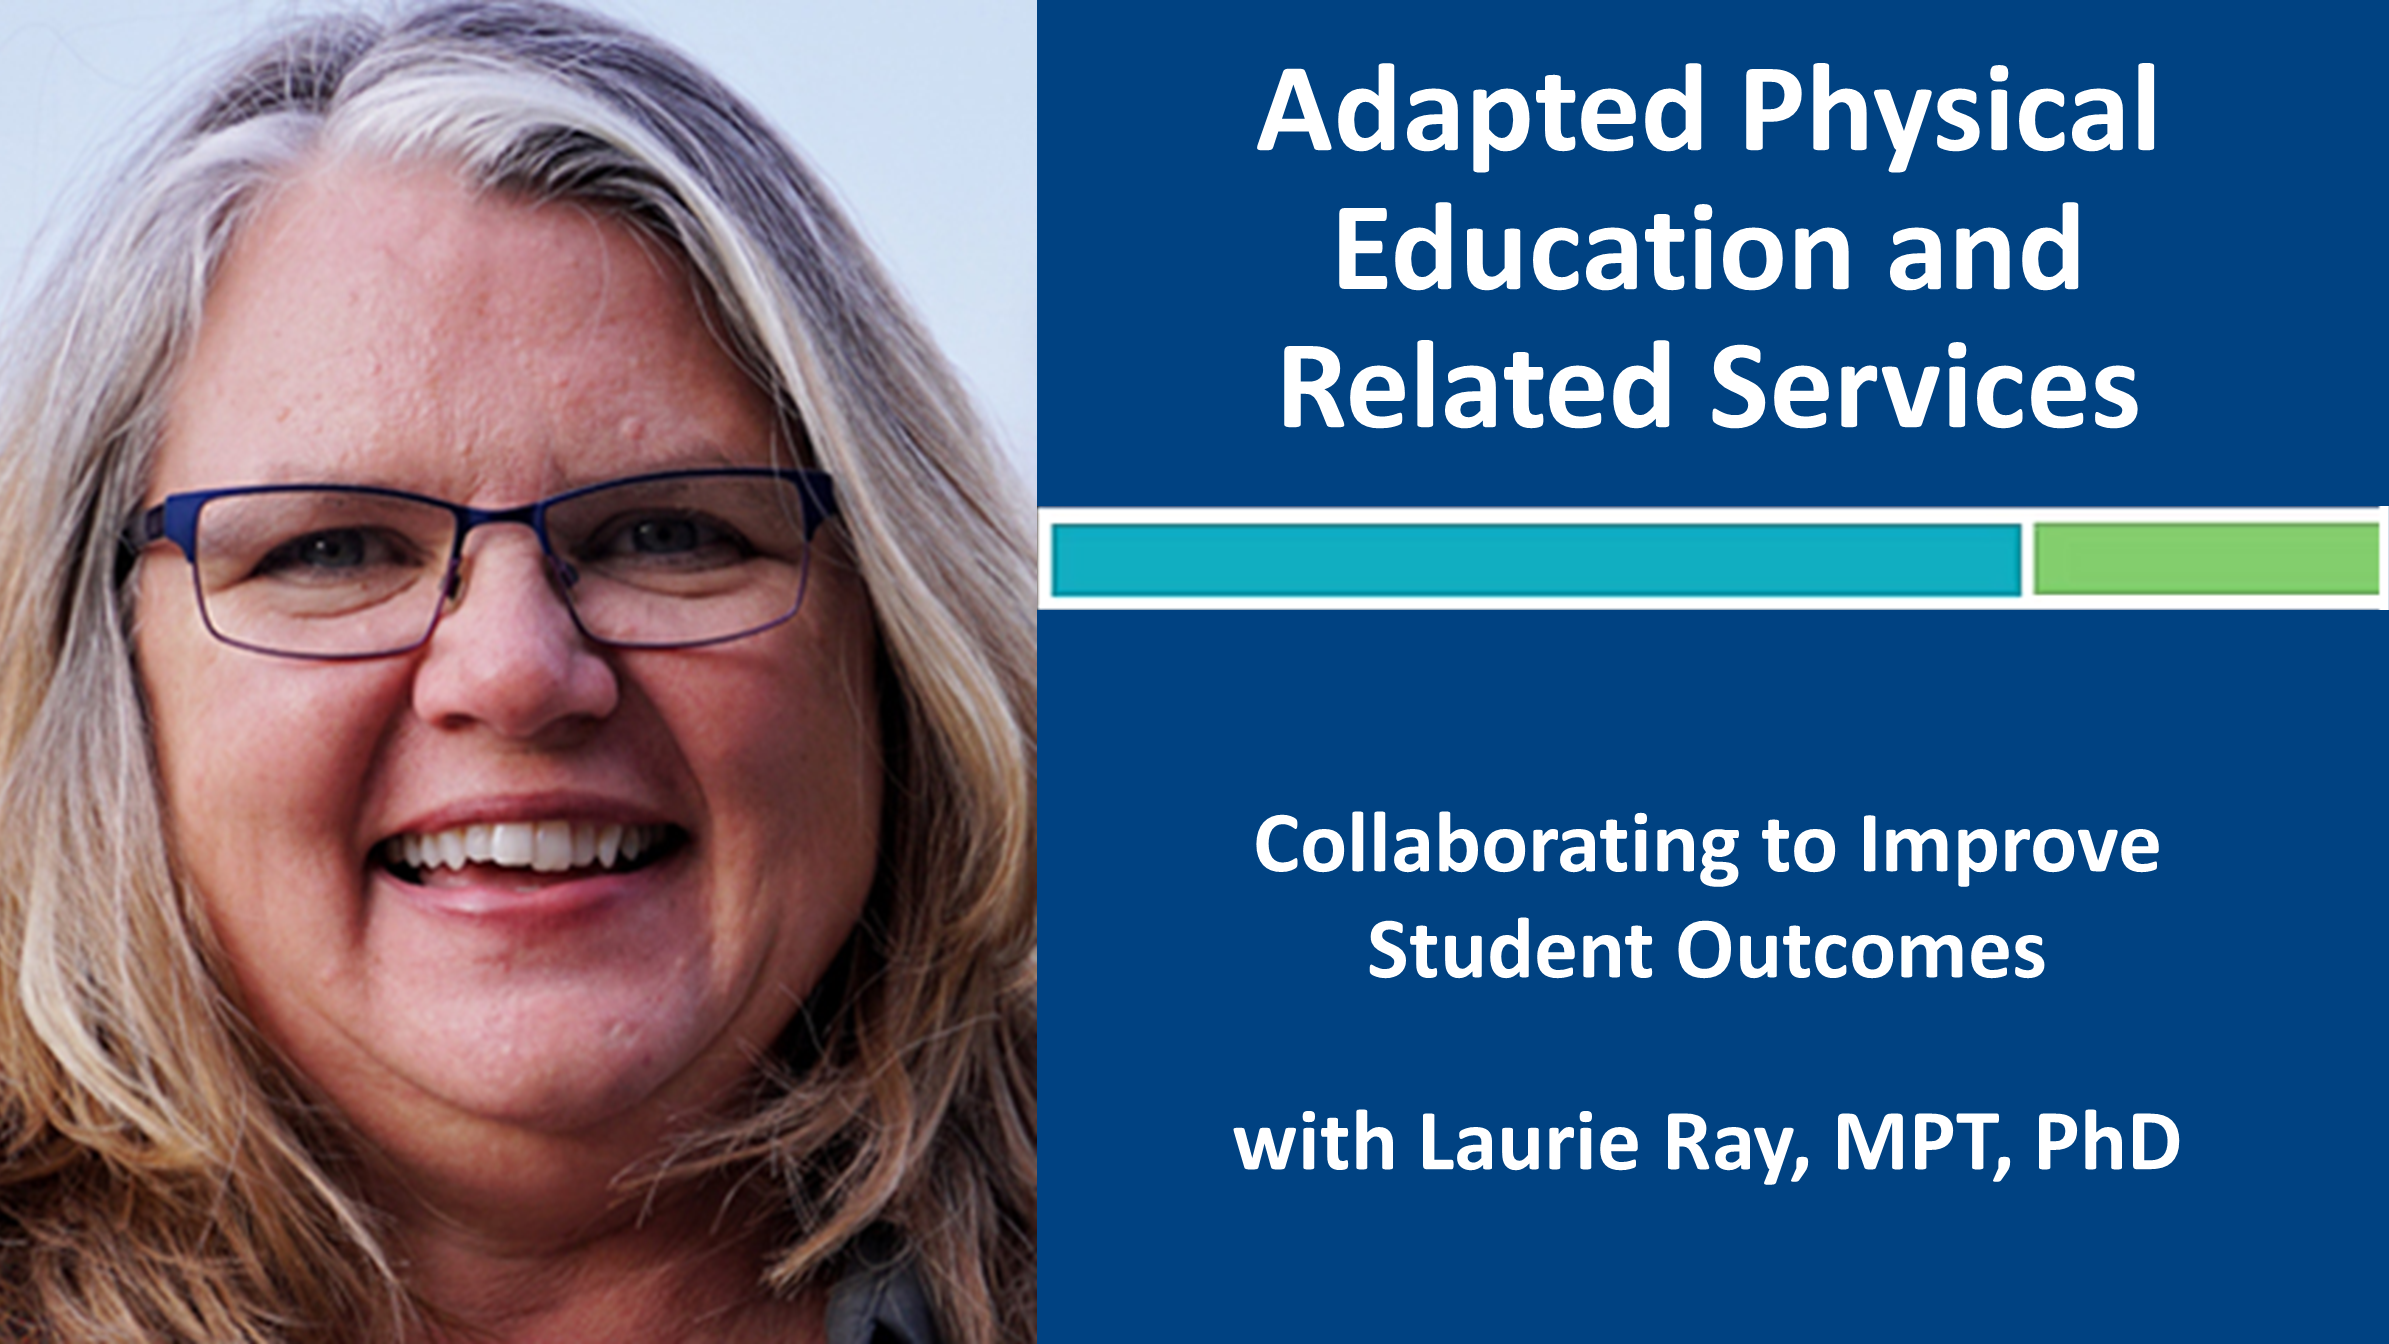 Webinar 7: APE and Related Services with Laurie Ray, MPT, PhD